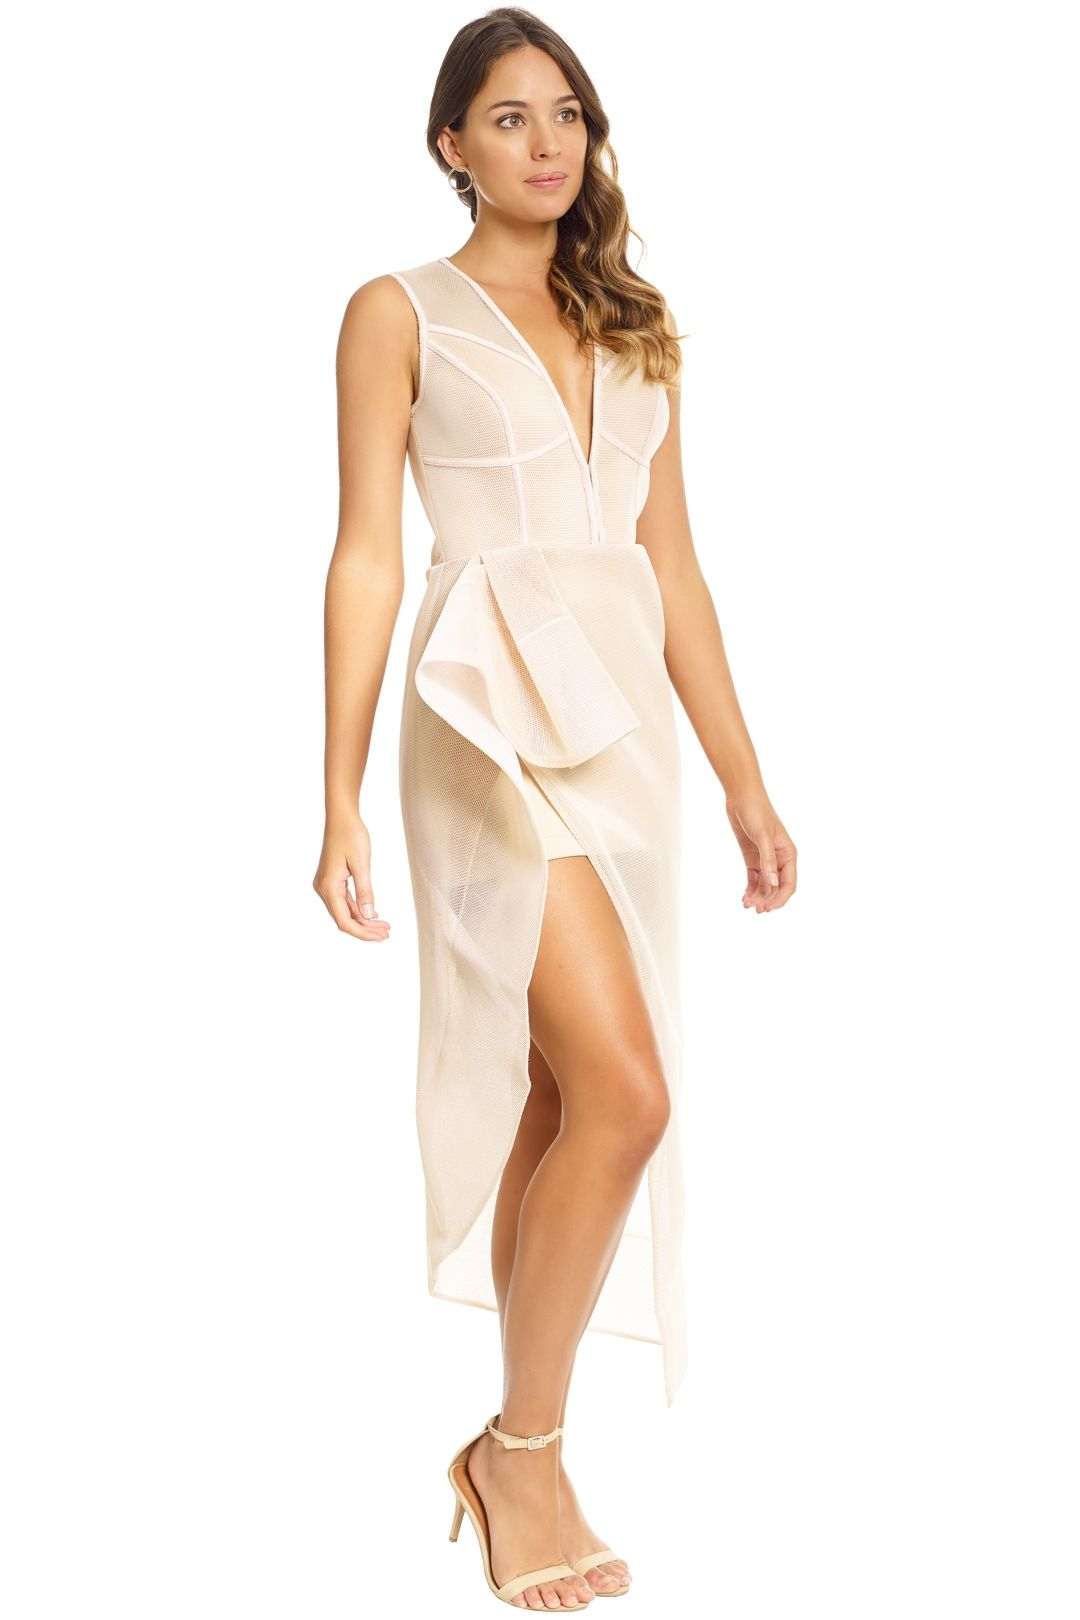 Lexi - Prana Dress - Champagne - Side